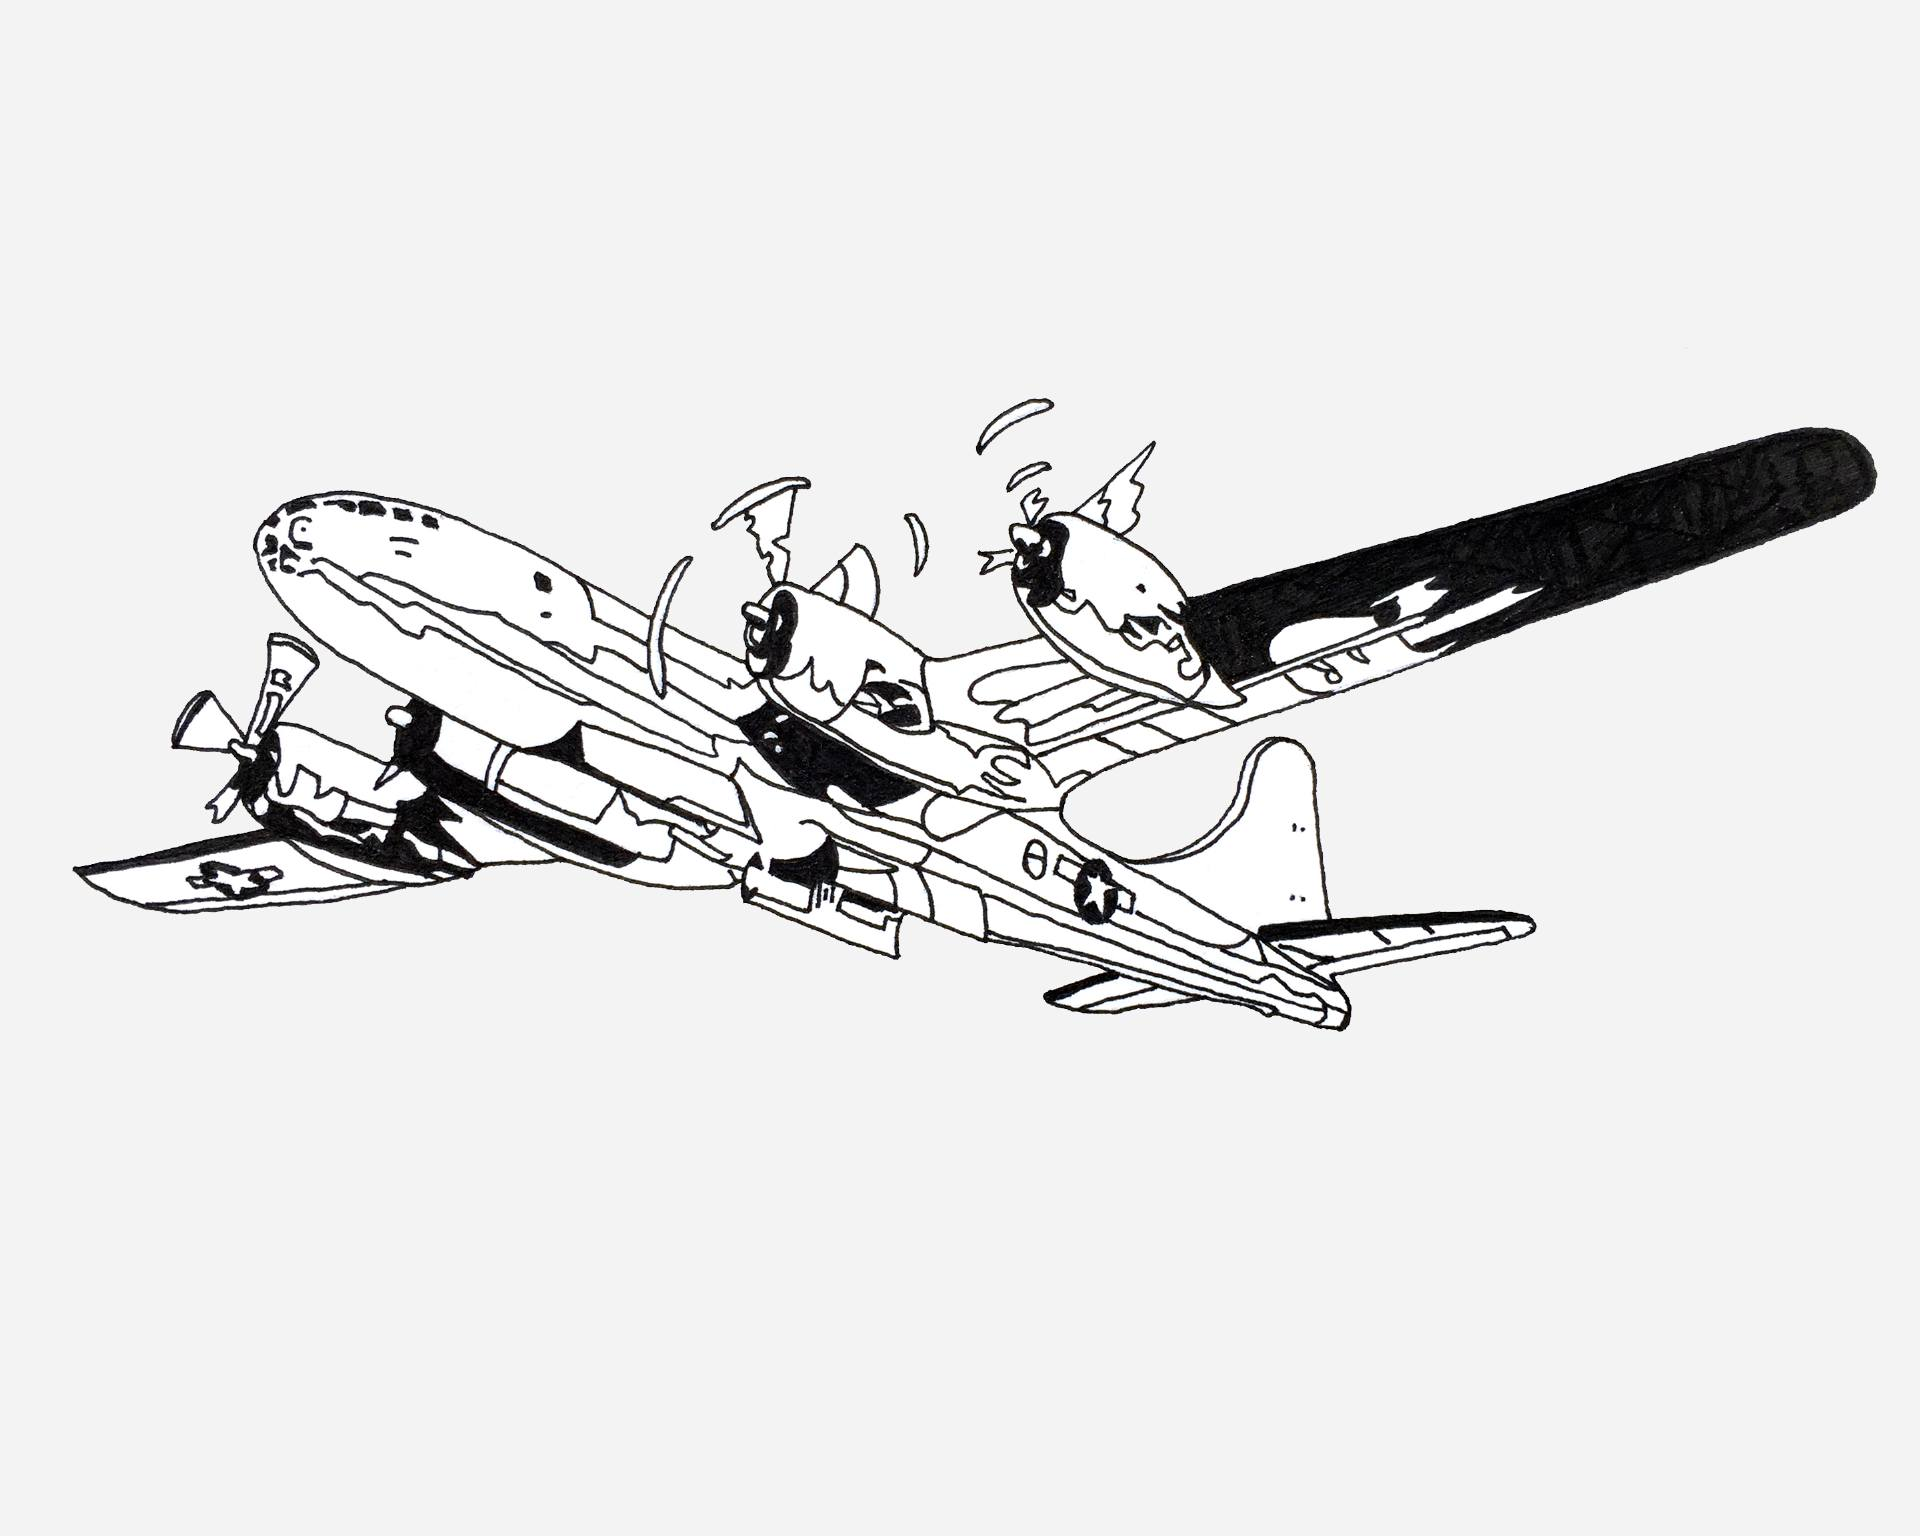 Coloring Page Airplane Outline : Airplane pencil drawing at getdrawings free for personal use